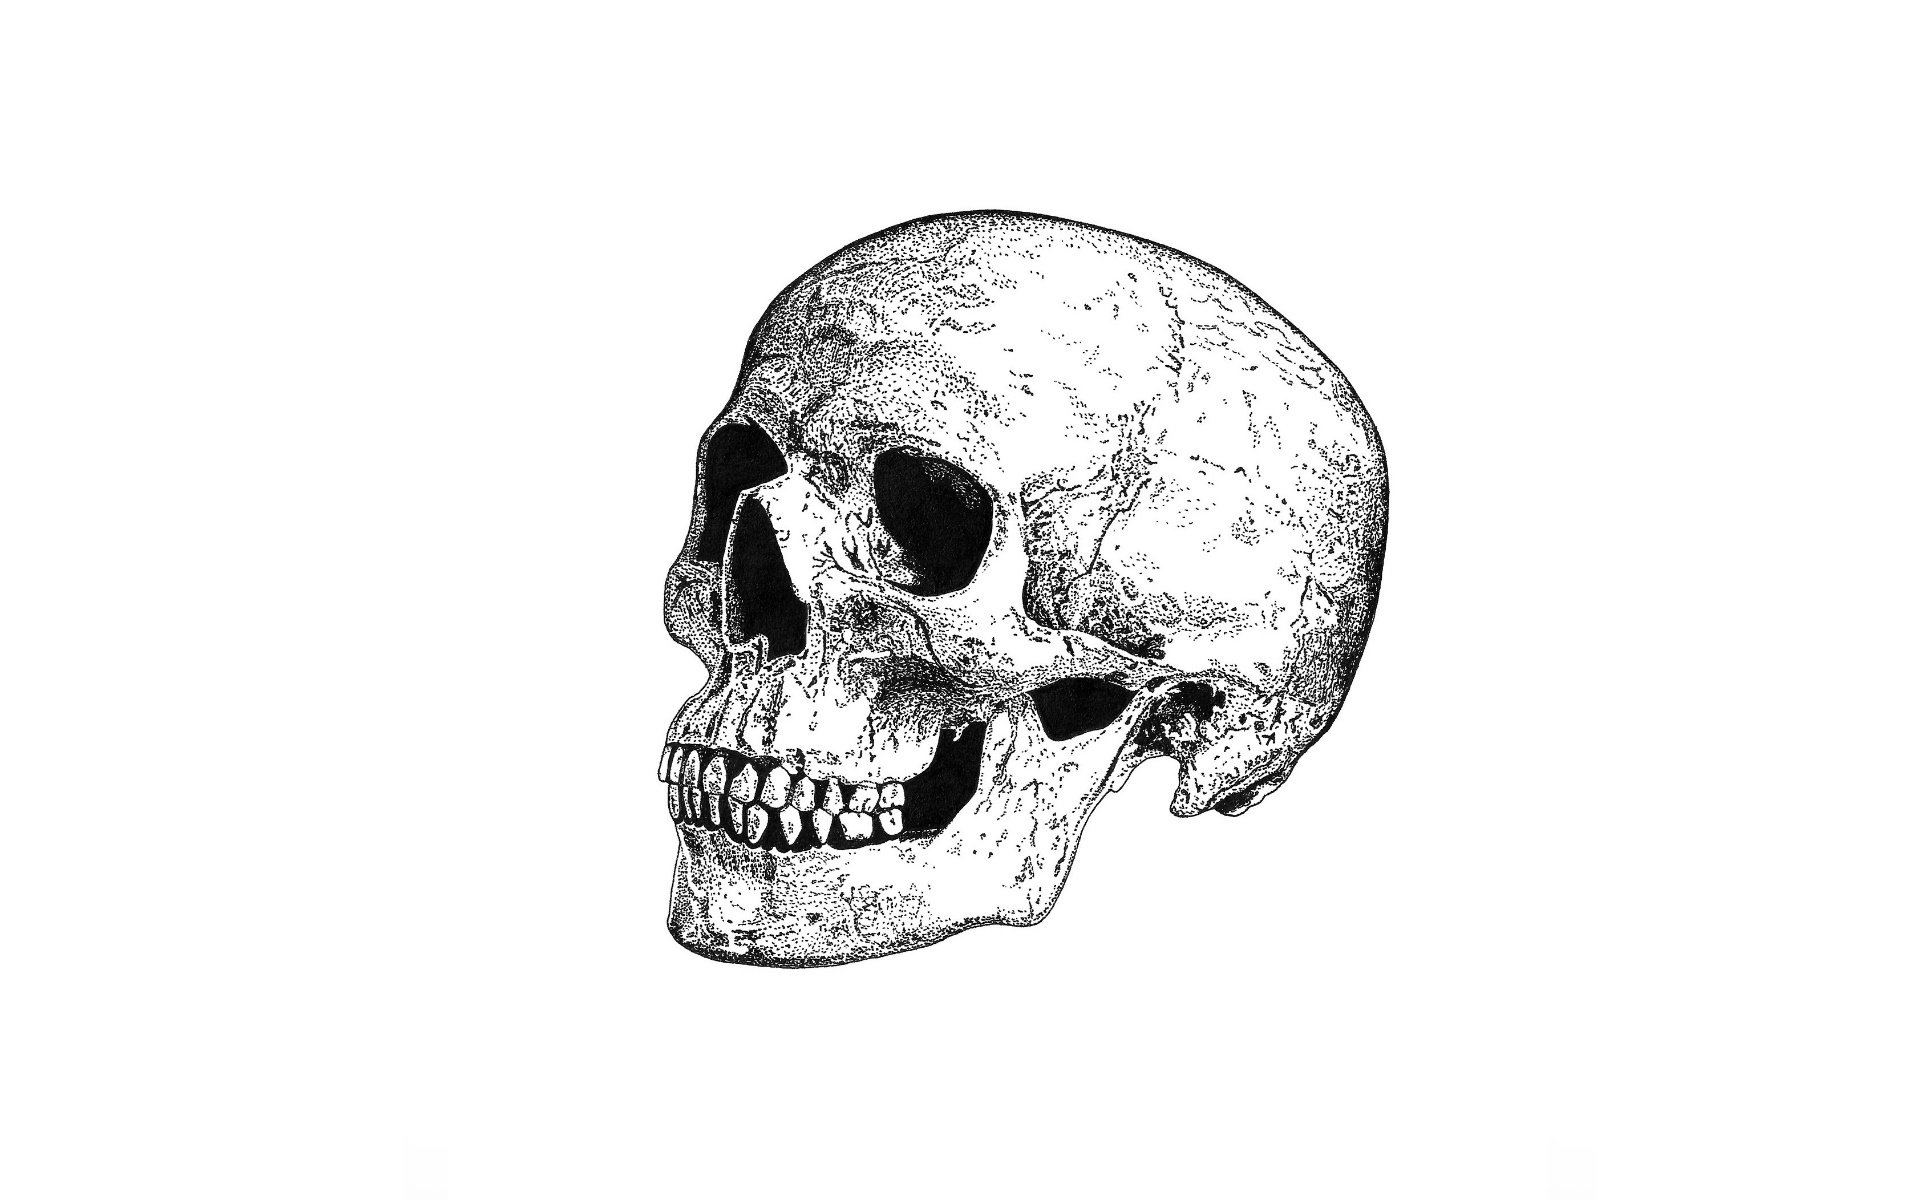 Most Amazing 3d Wallpapers Skull Artwork Minimalism Monochrome Wallpapers Hd